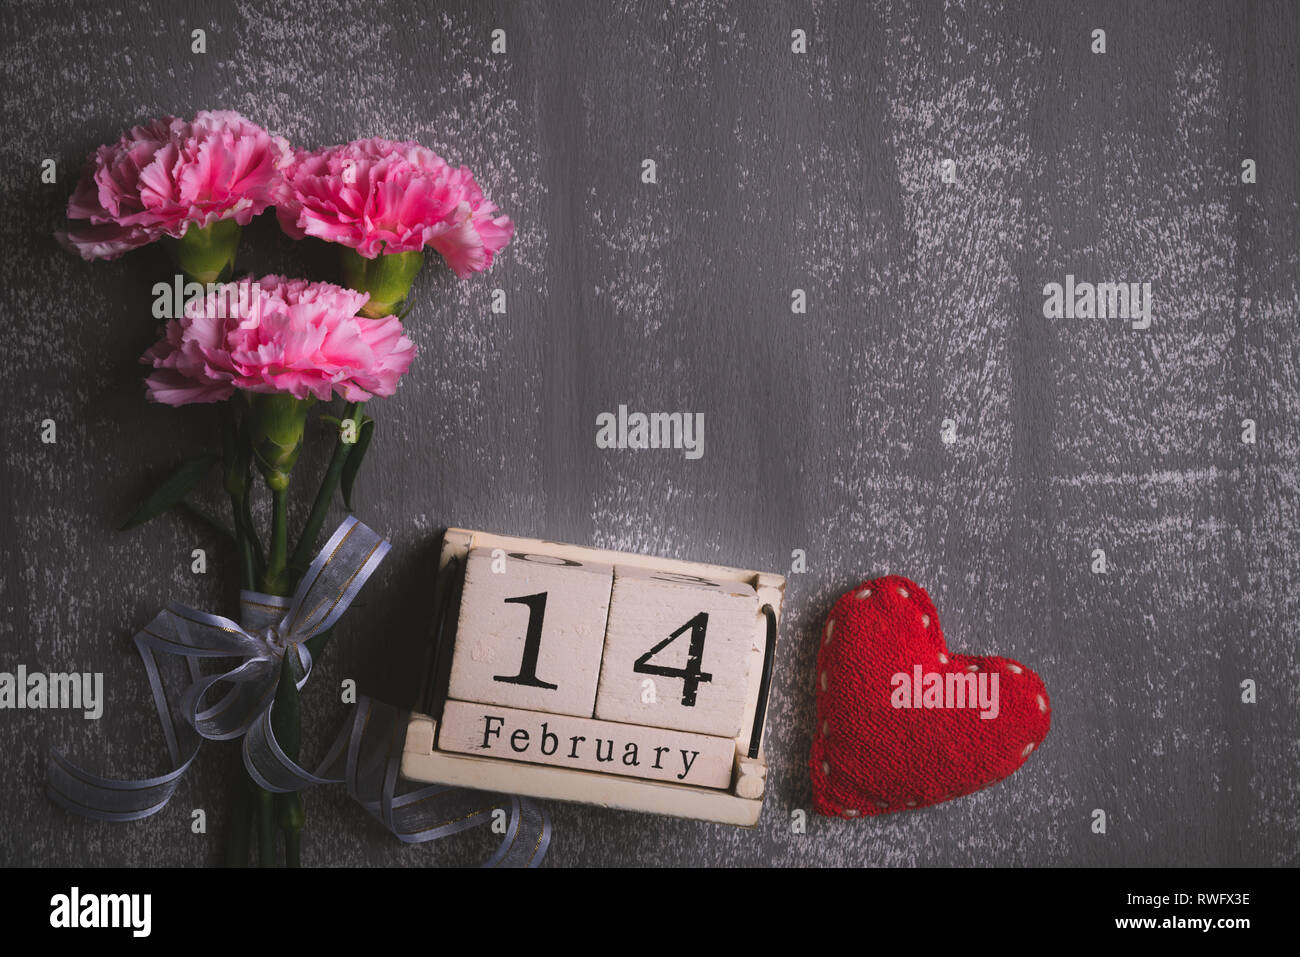 Valentines day and love concept. Pink carnation flower with February 14 text on wooden block calendar and red heart and on gray wooden background. - Stock Image